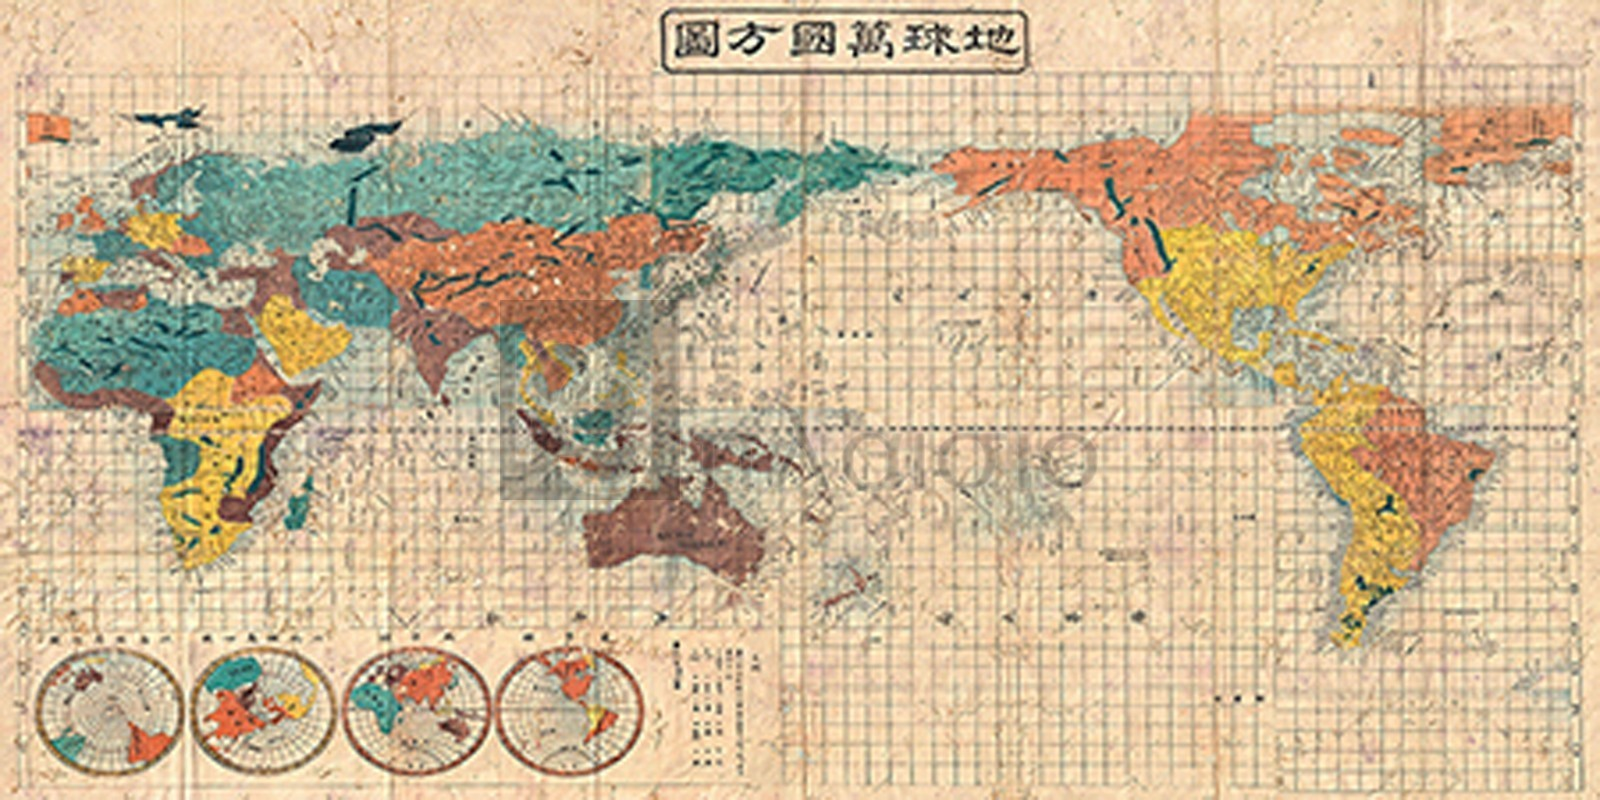 Suido Nakajima - Japanese Map of the World, 1853